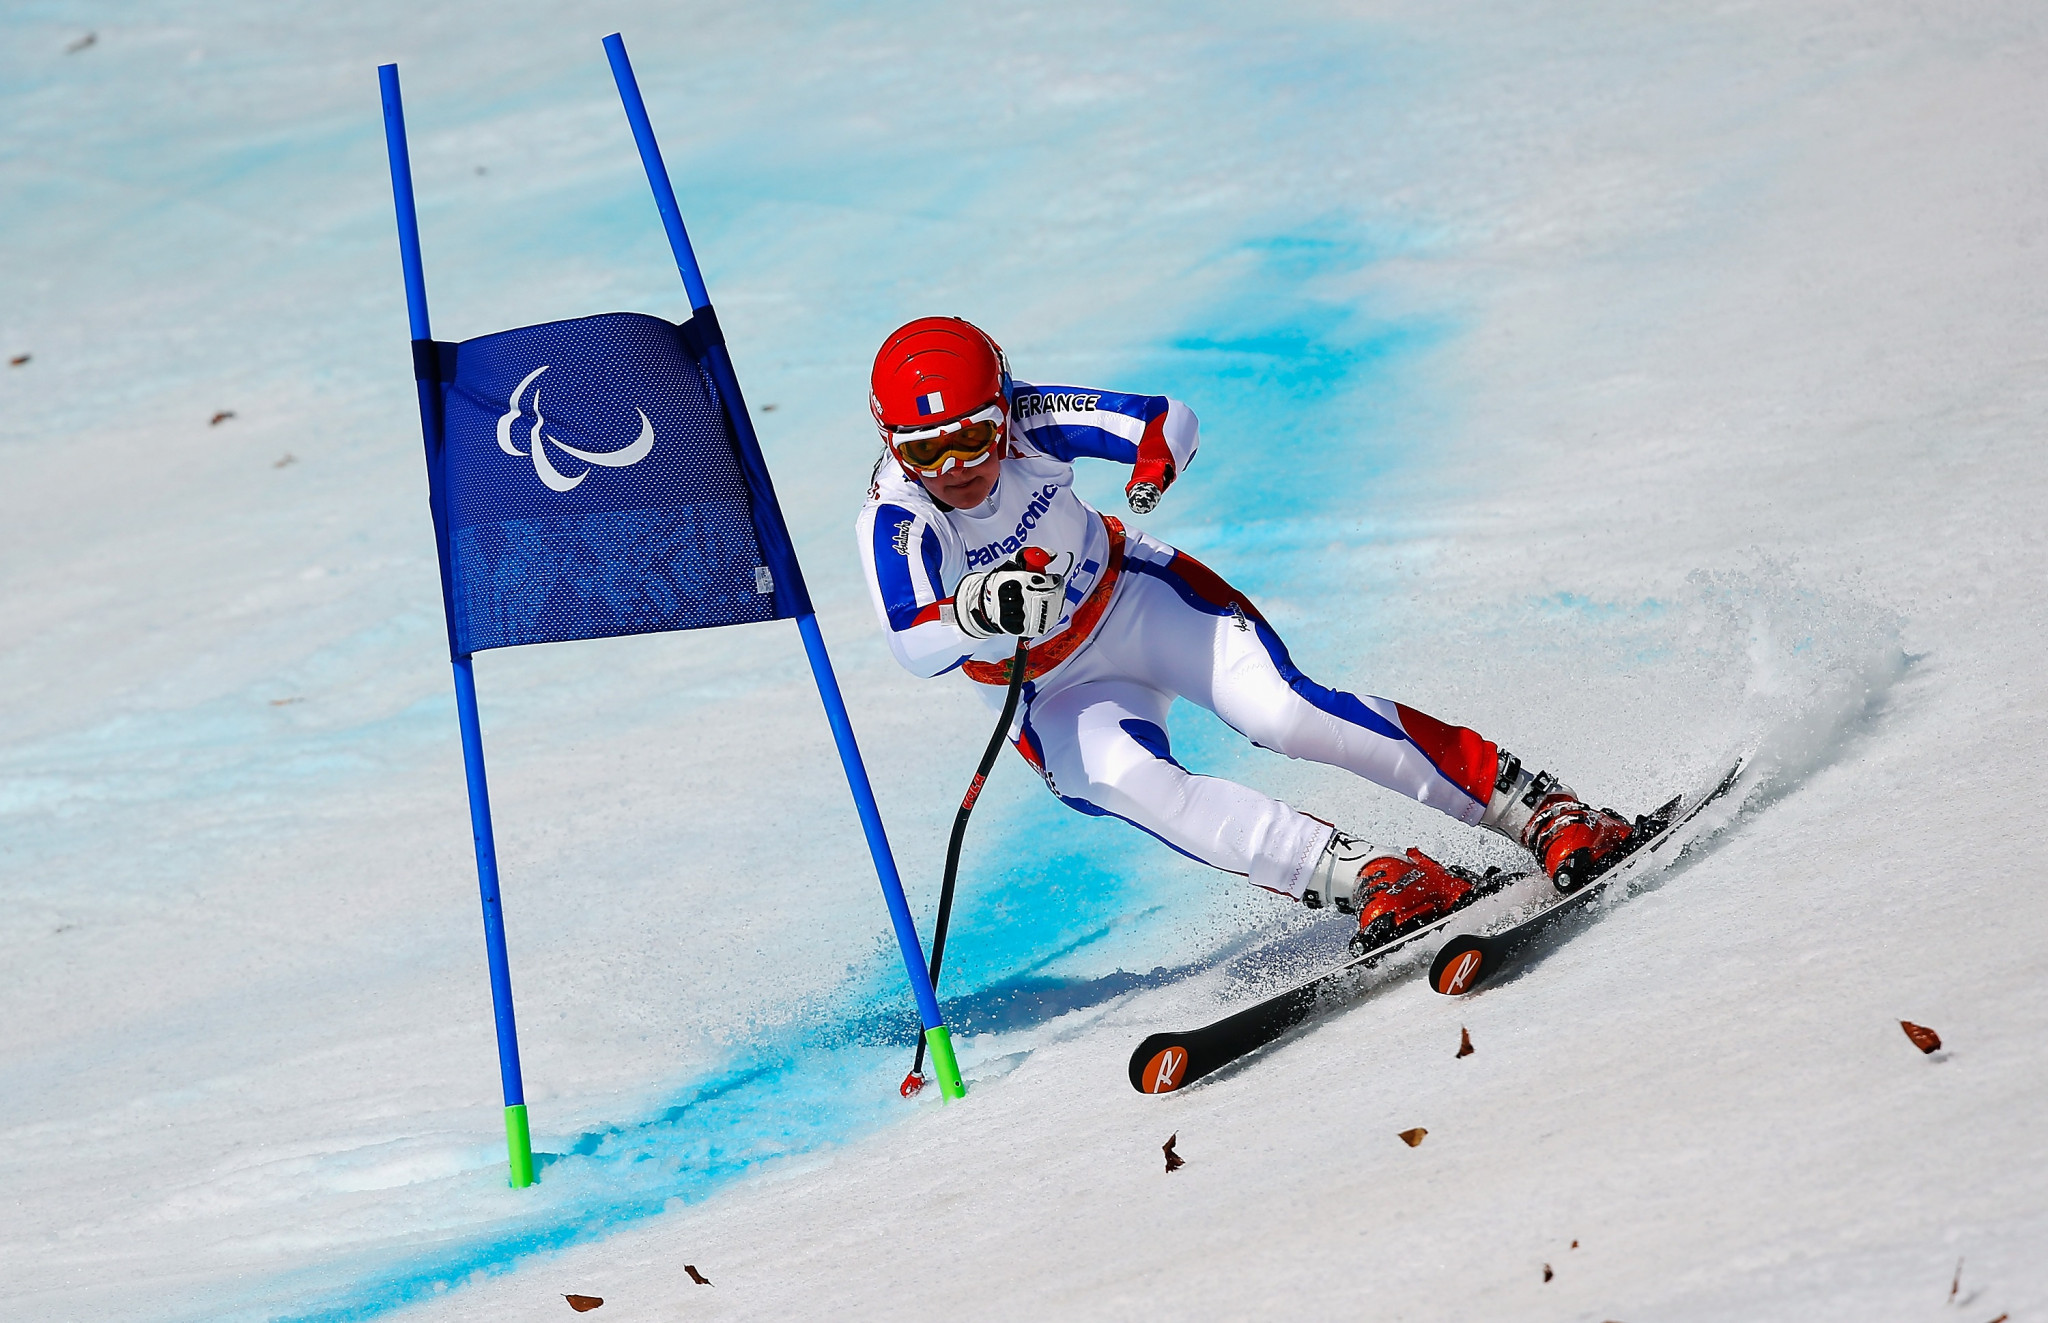 Voting process opened for election of winter sport representatives on IPC Athletes' Council